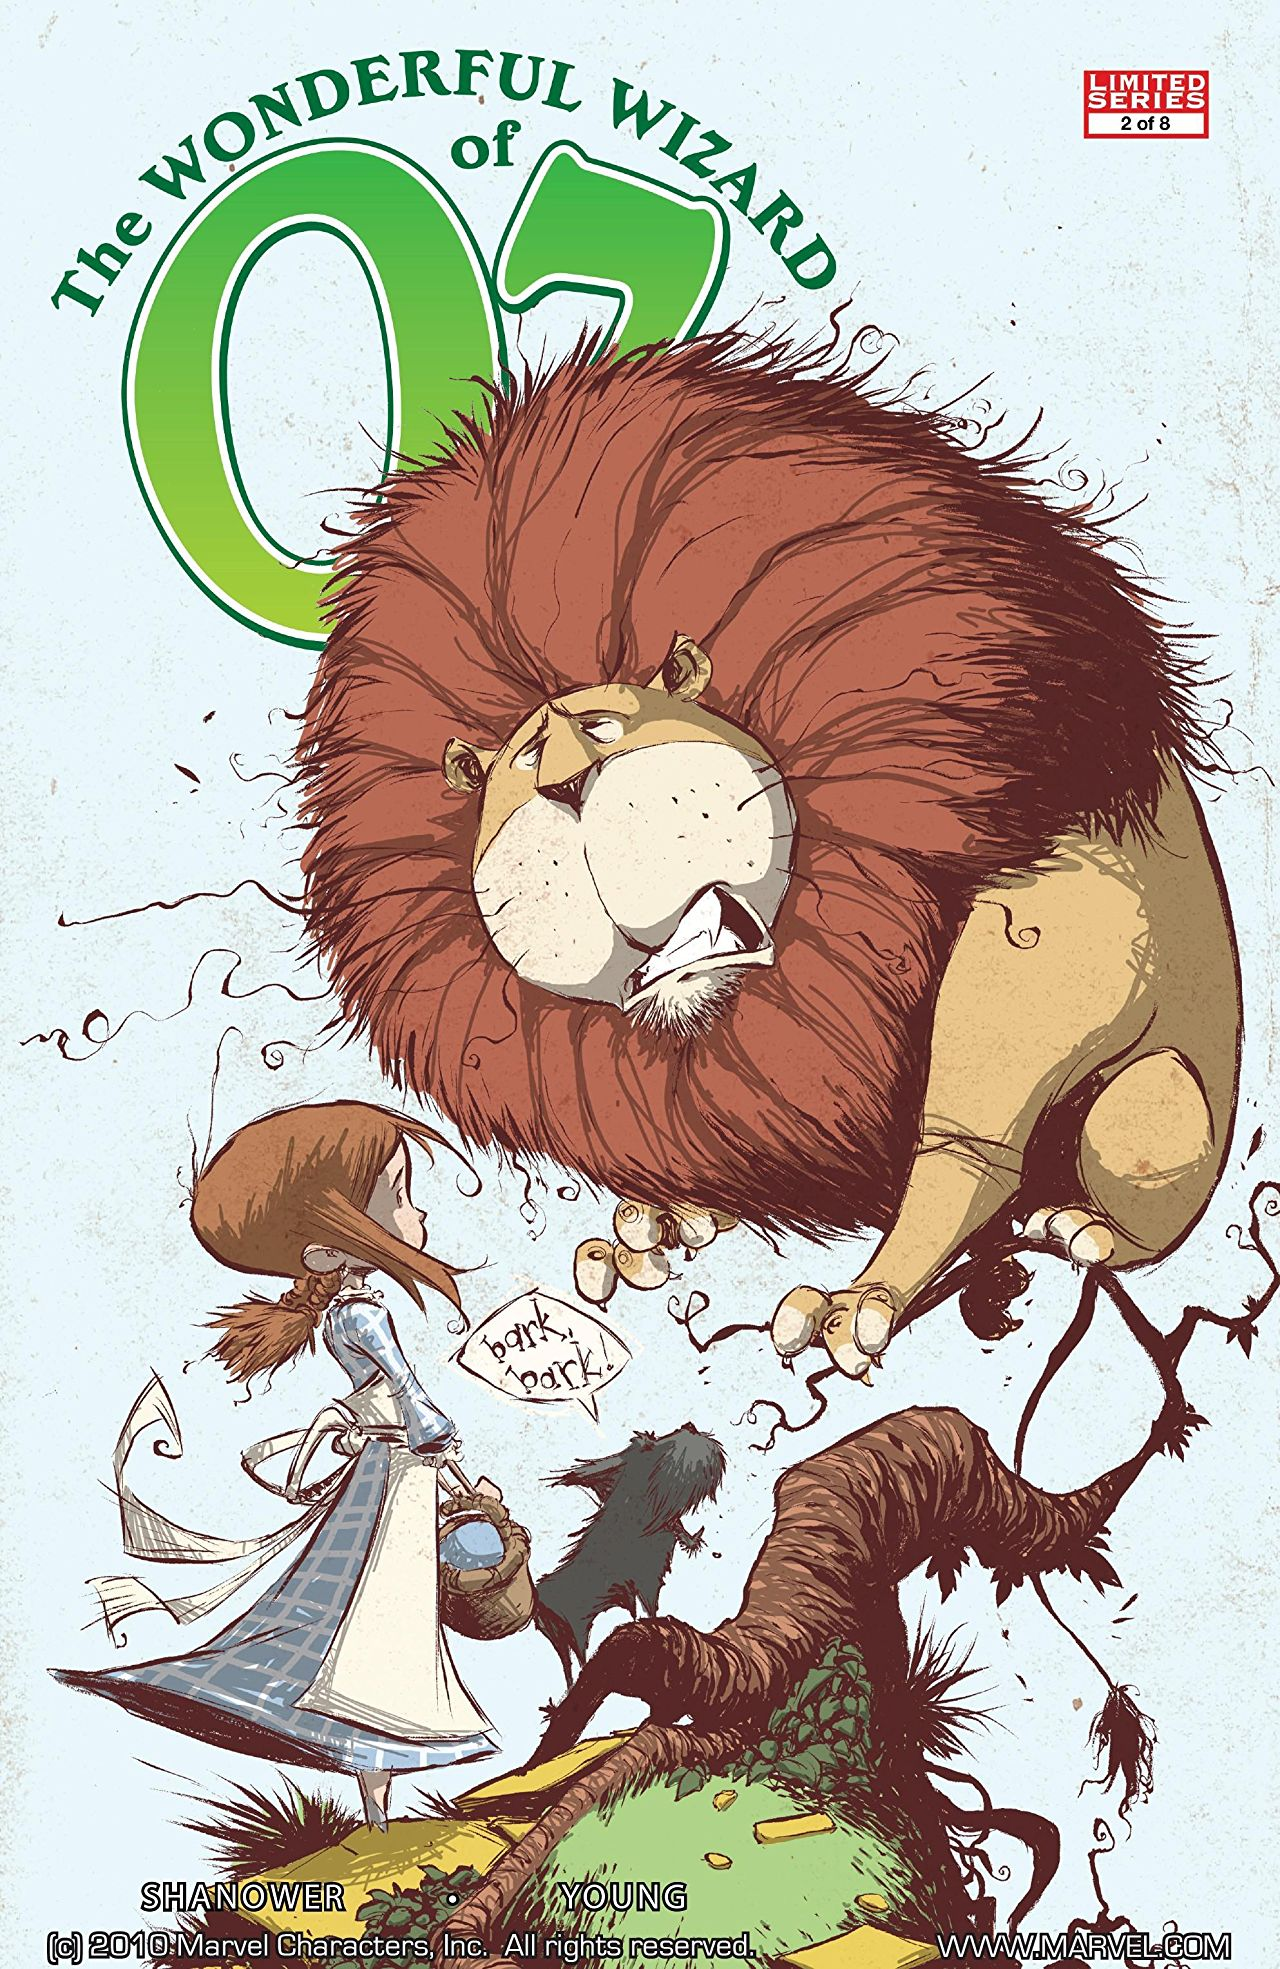 Oz: The Complete Collection – Wonderful Wizard/Marvelous Land Review